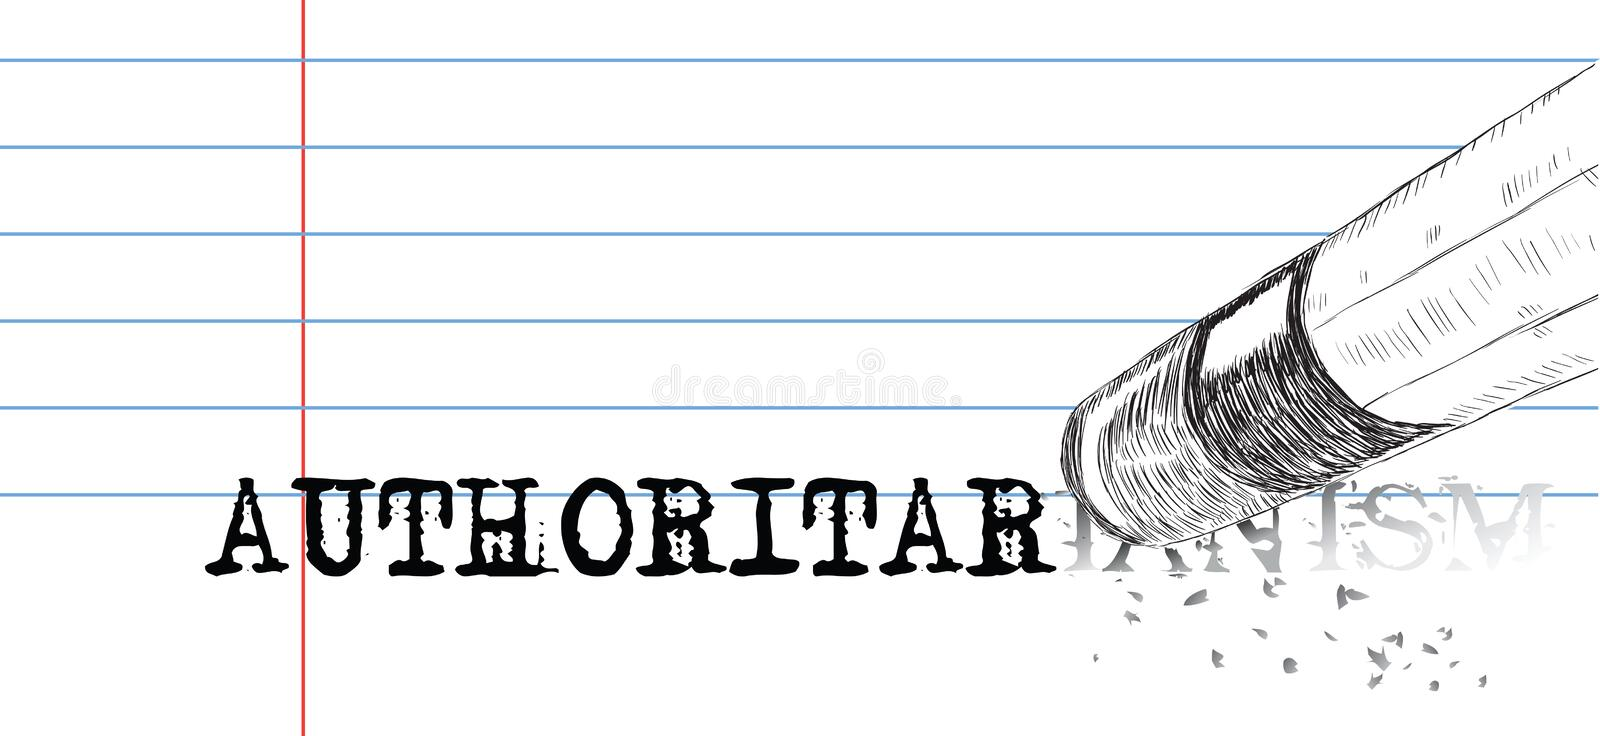 Laconic poster about the negative notion of authoritarianism. A pencil with an eraser erases the word authoritarianism. Laconic poster on Authoritarianism vector illustration